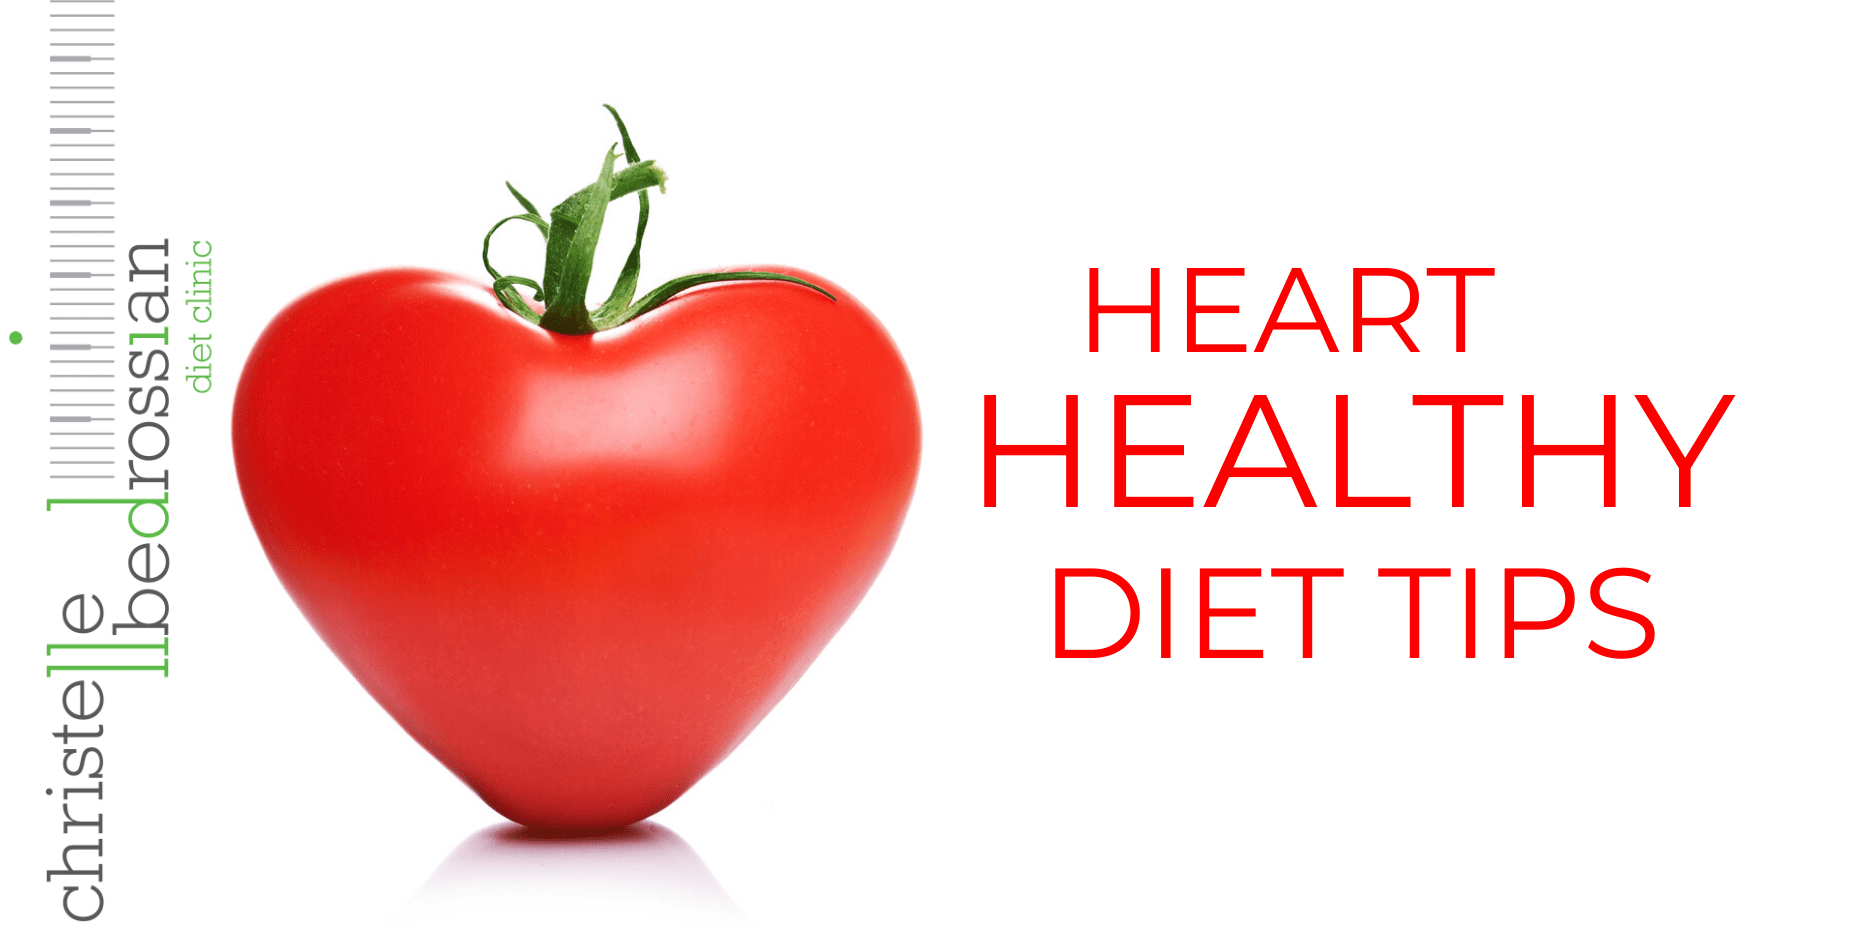 heart-healthy diet tips